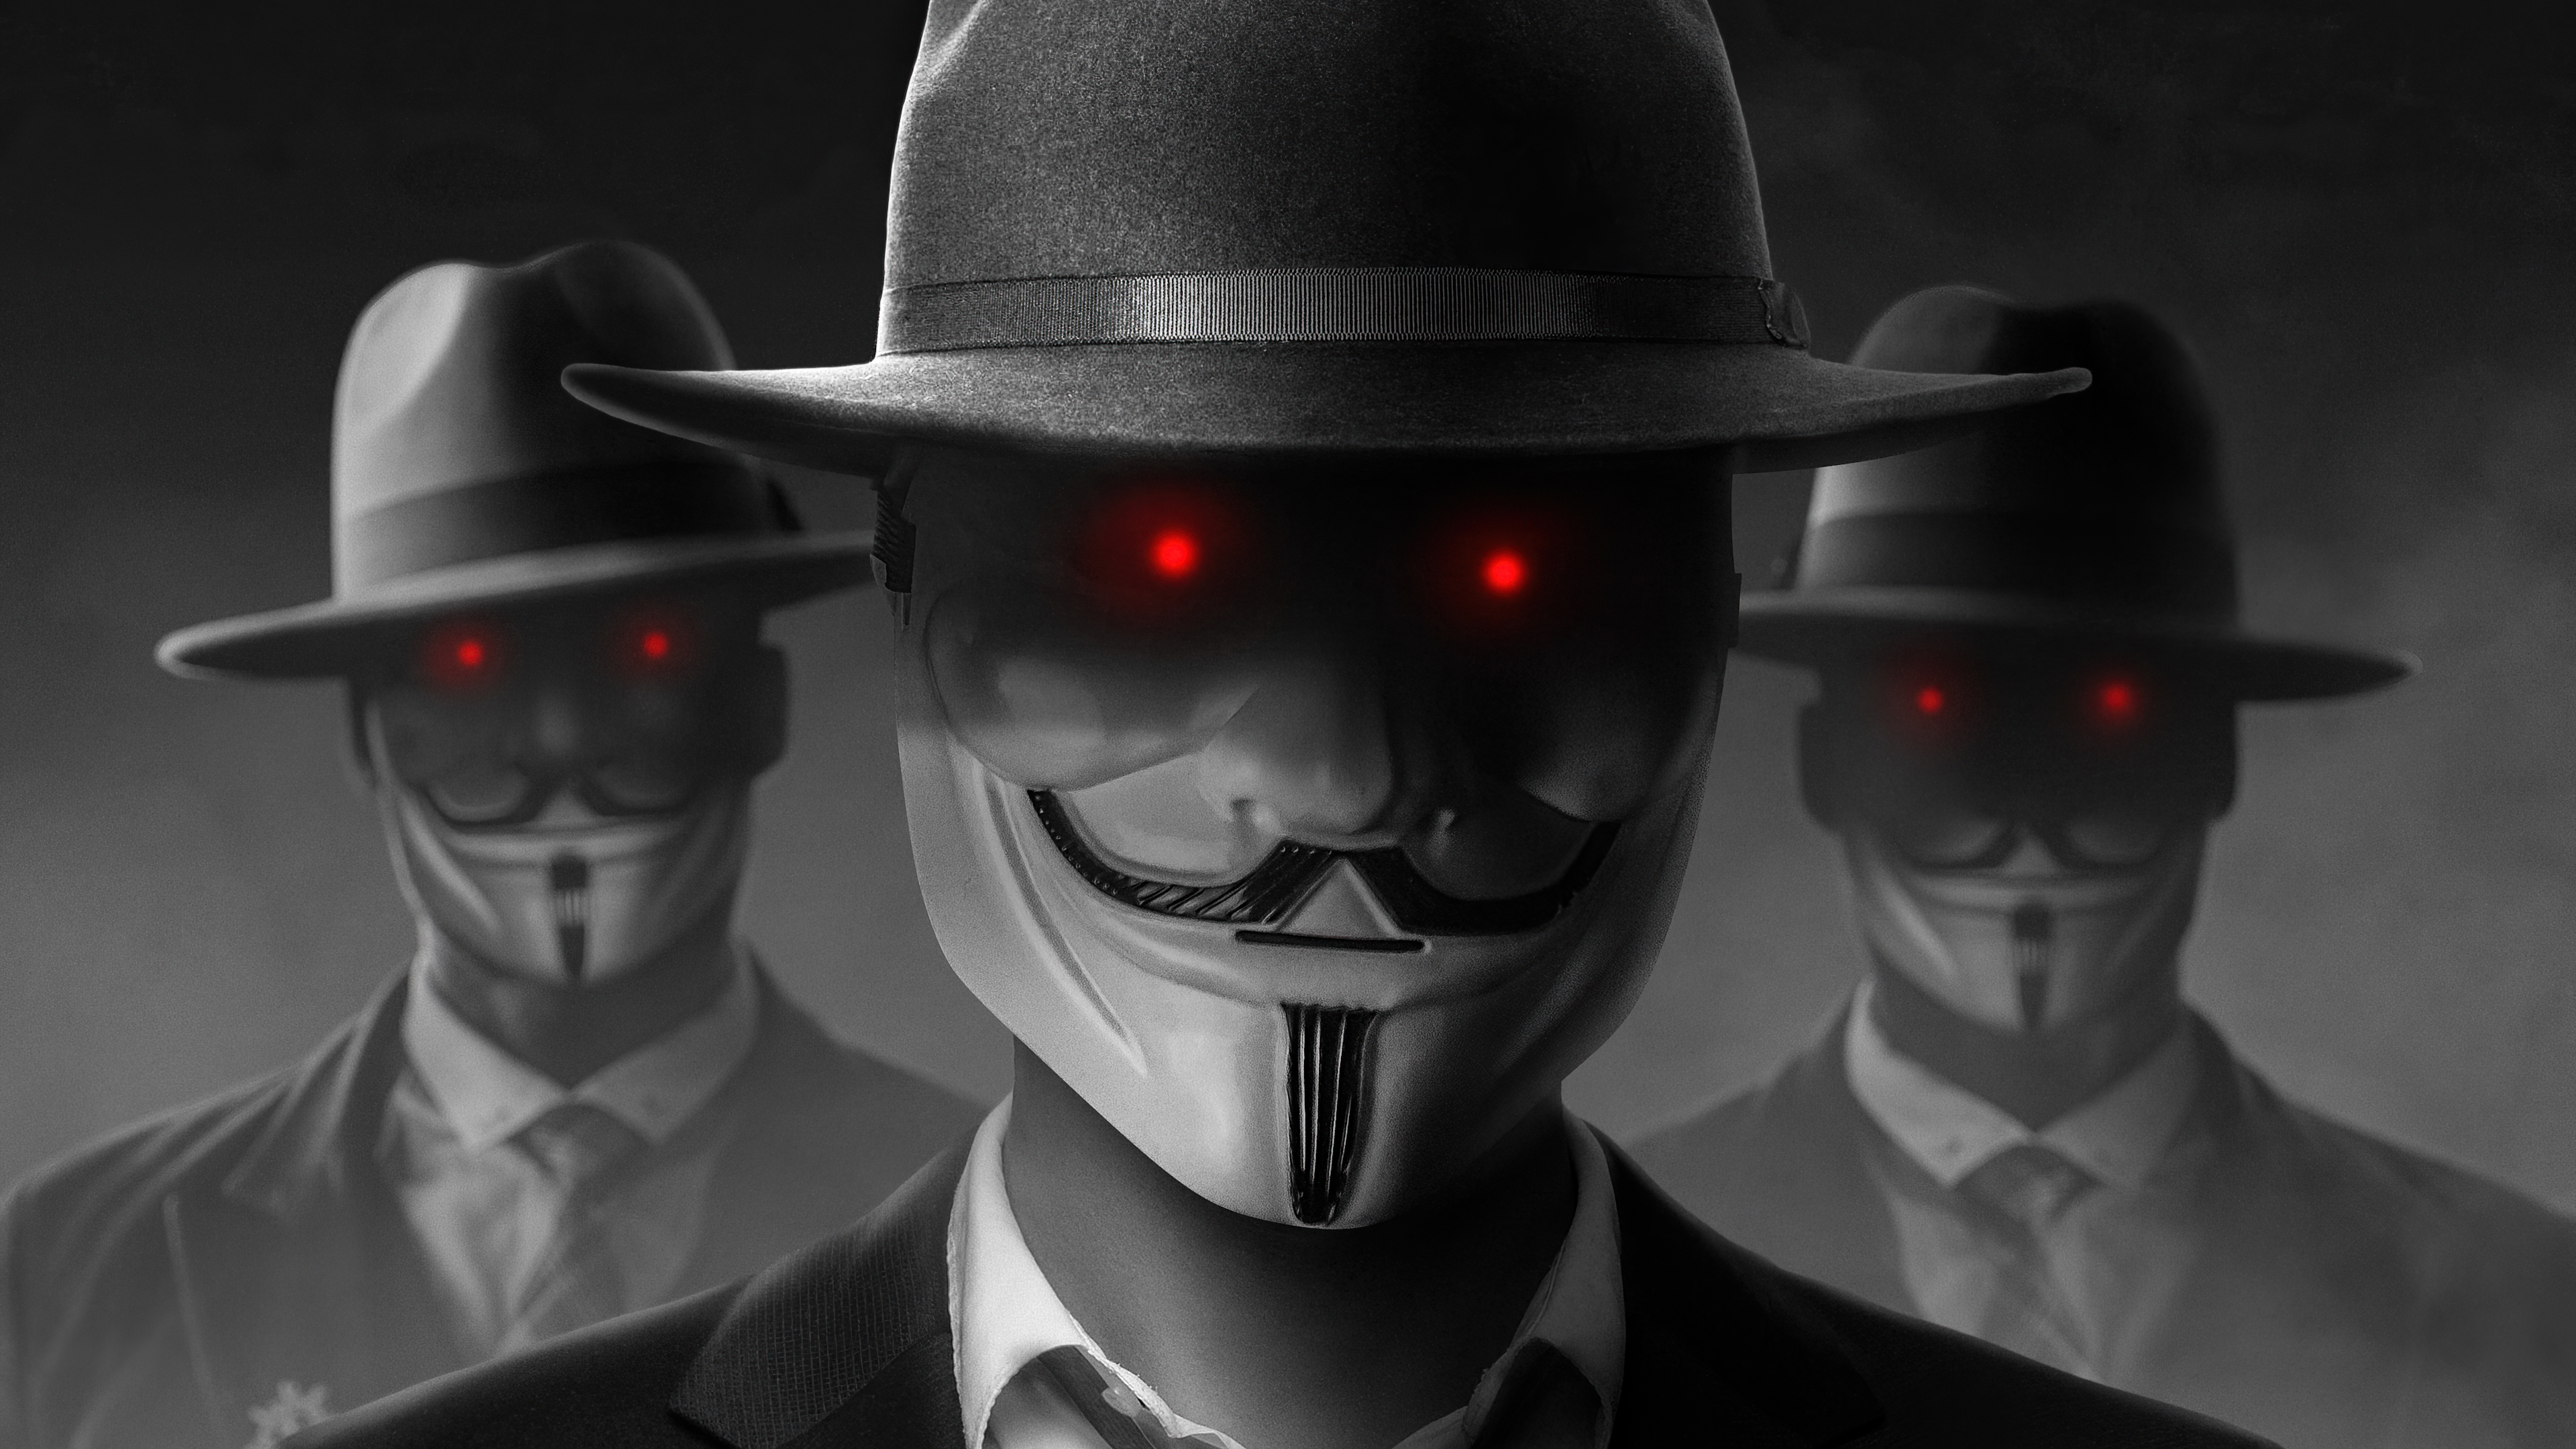 Hacker Anonymous Evil Wallpaper Hd Hi Tech 4k Wallpapers Images Photos And Background